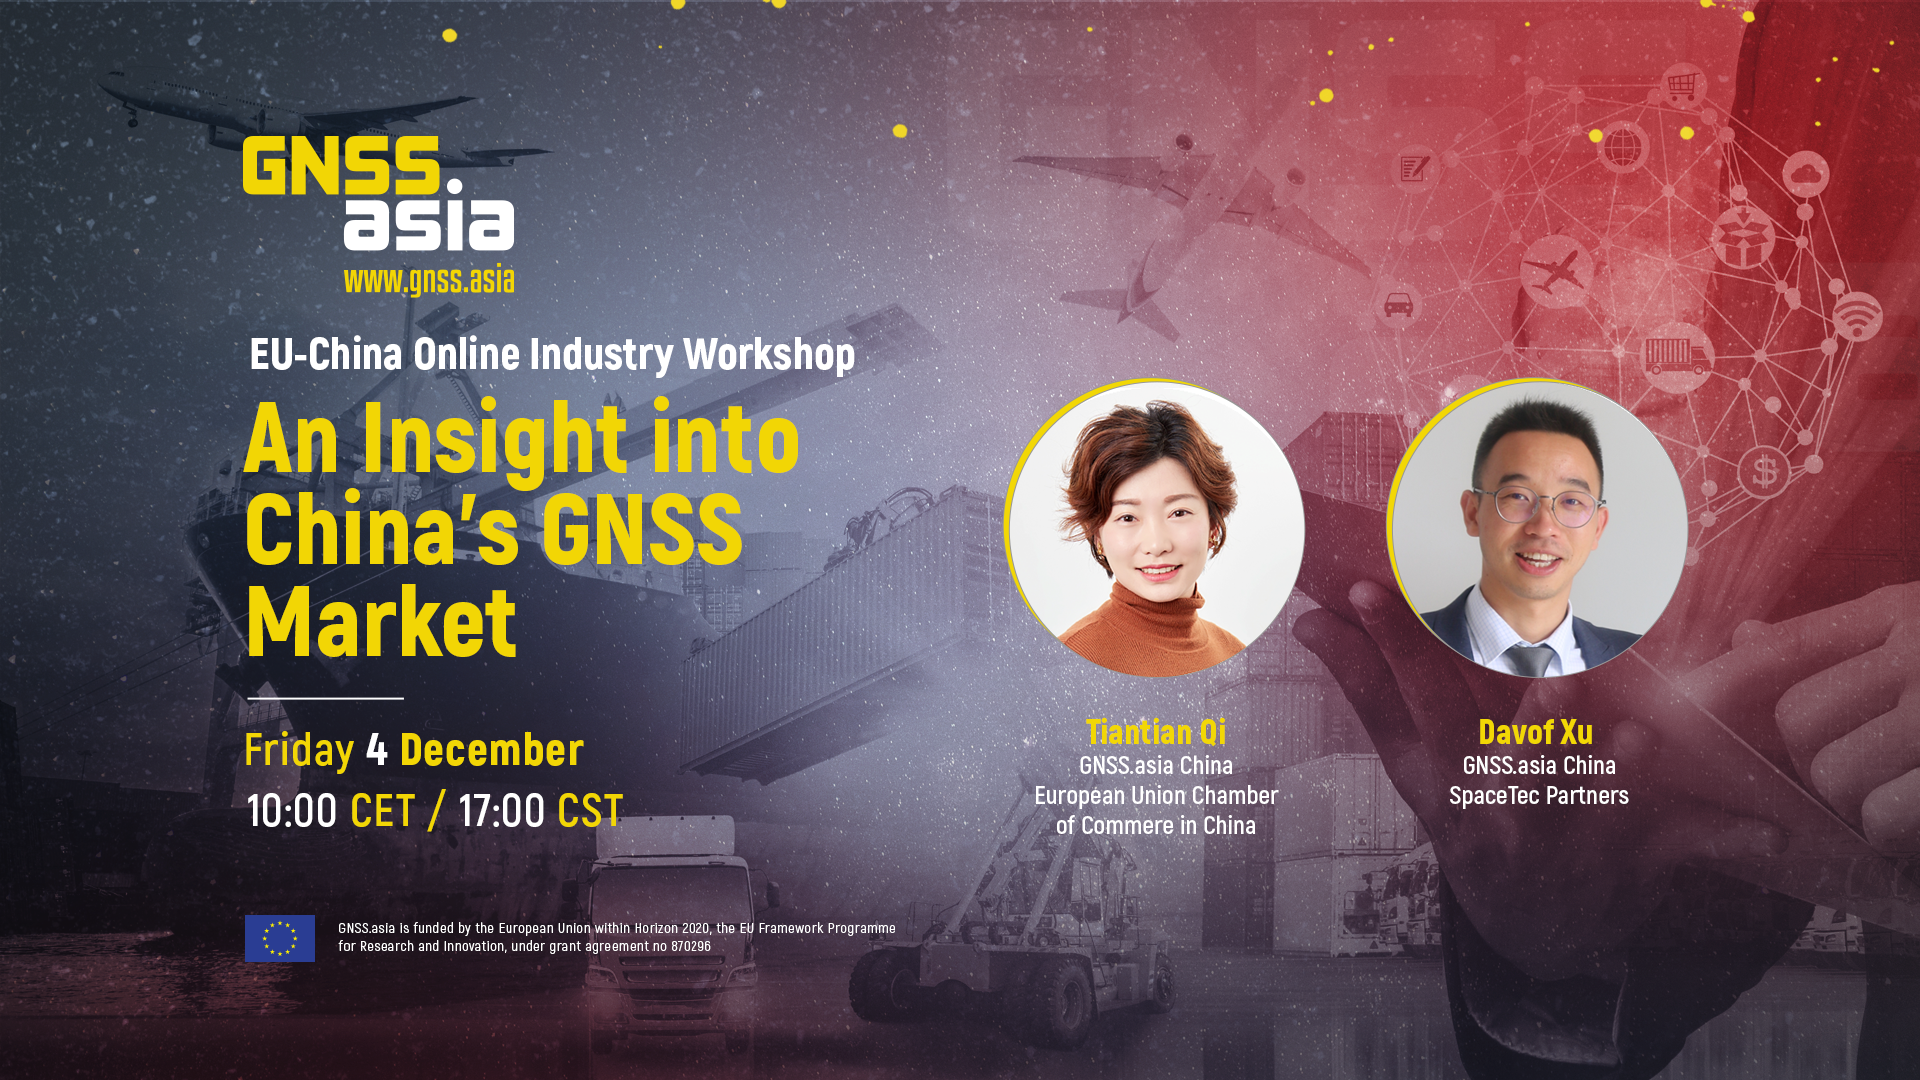 EU-China Online Industry Workshop – An Insight into China's GNSS Market